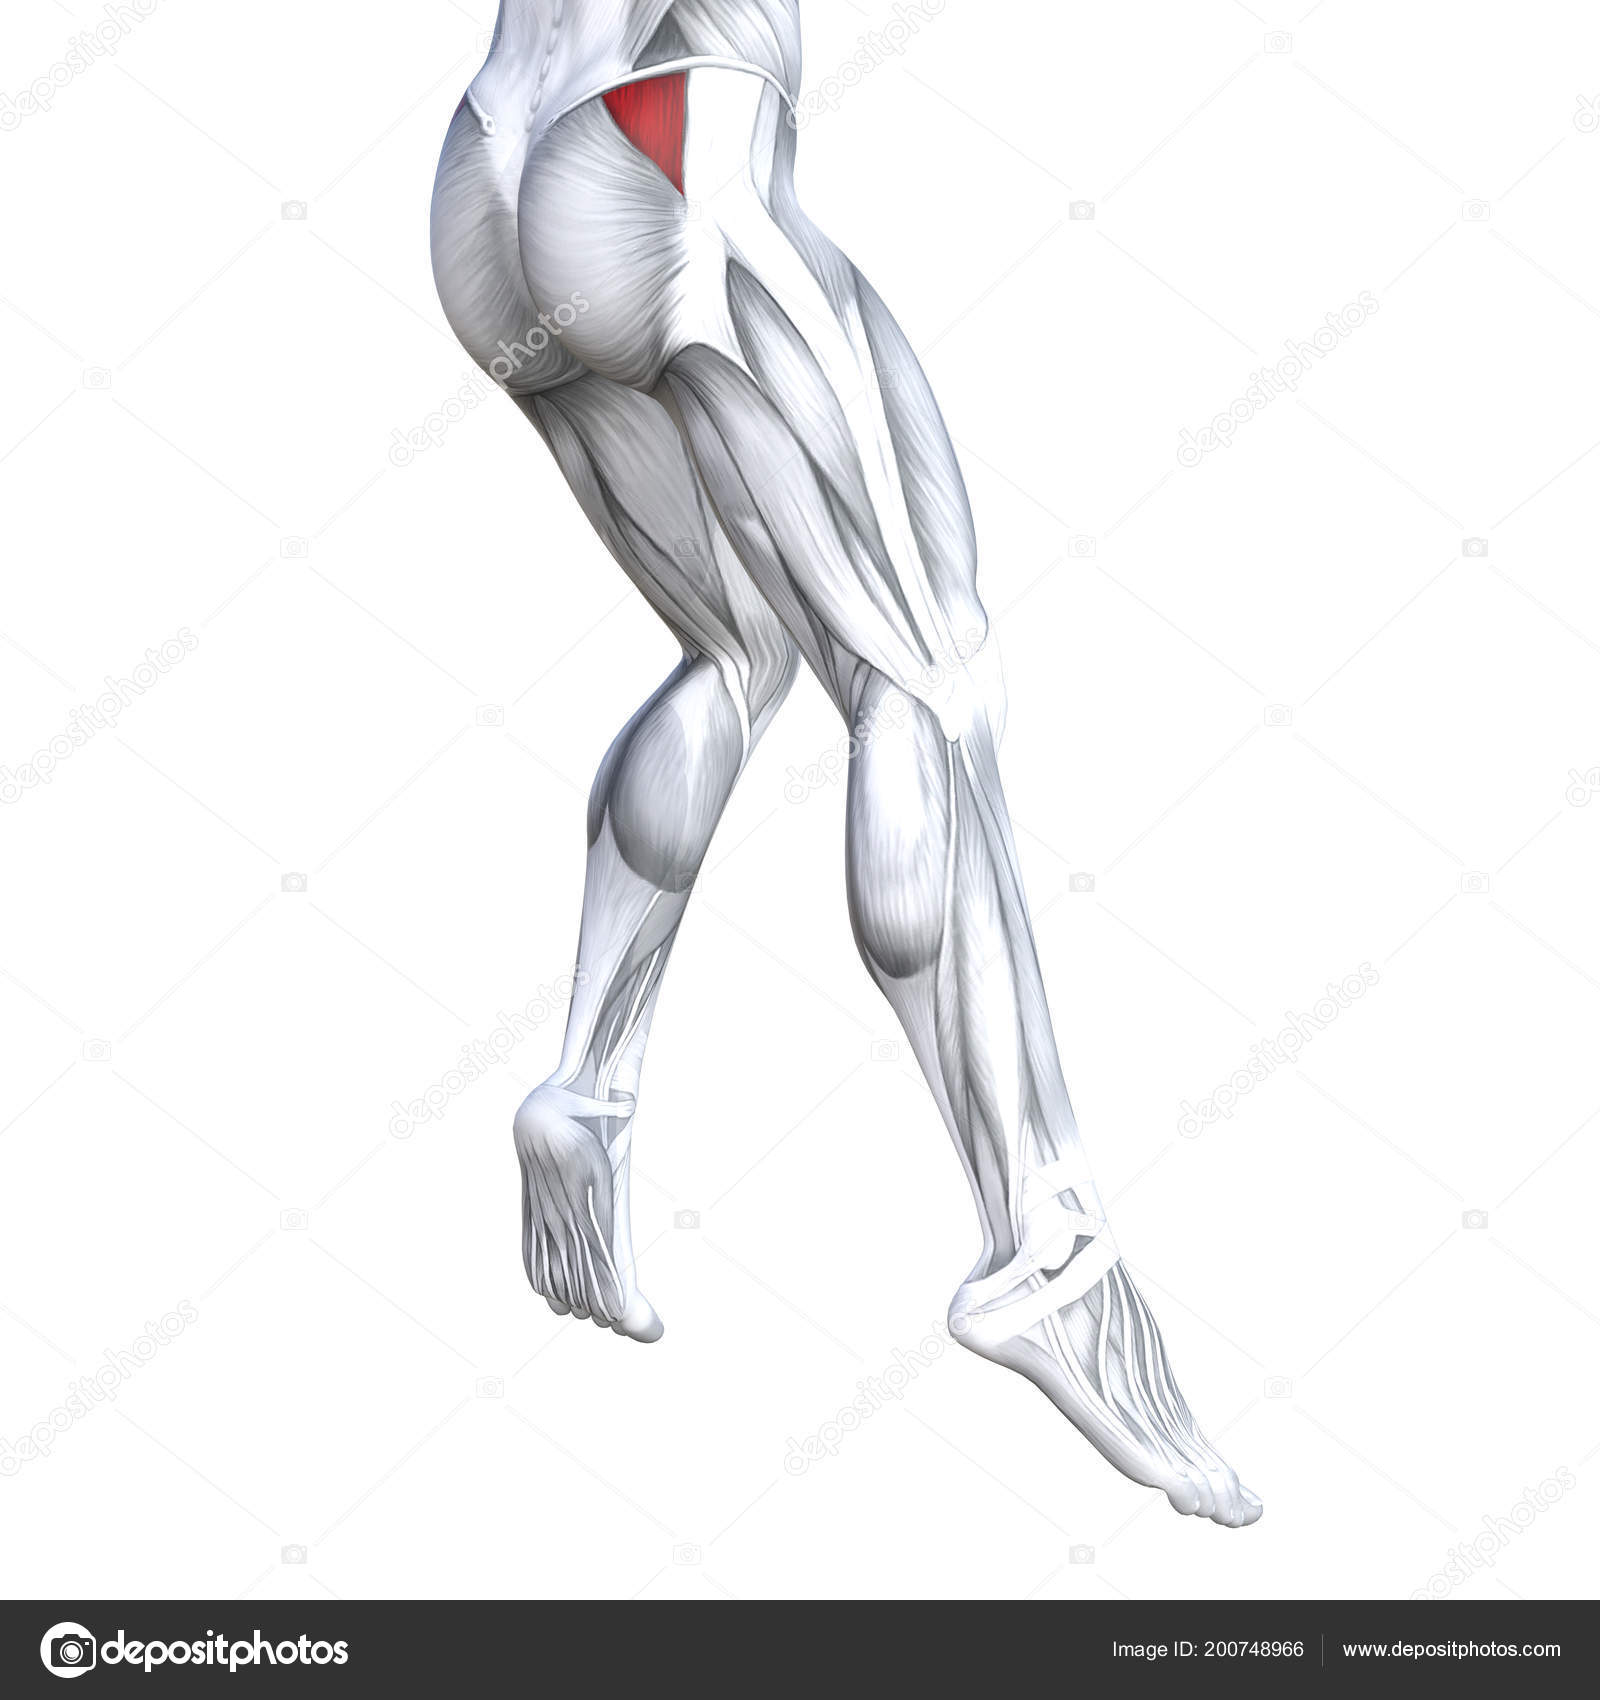 Concept Conceptual Illustration Fit Strong Back Upper Legs Human ...